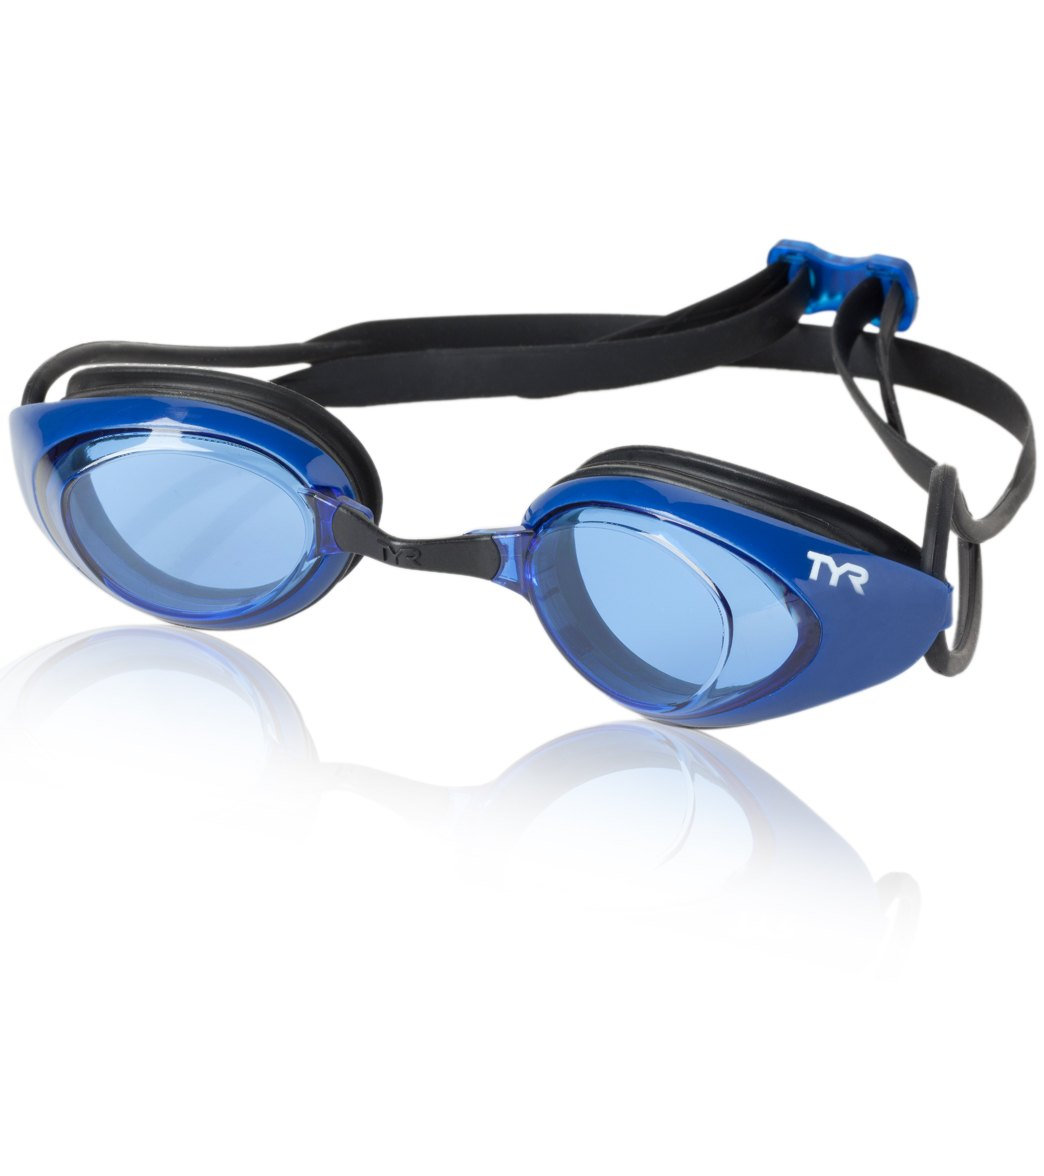 TYR Black Hawk Racing Performance Competiton Goggles